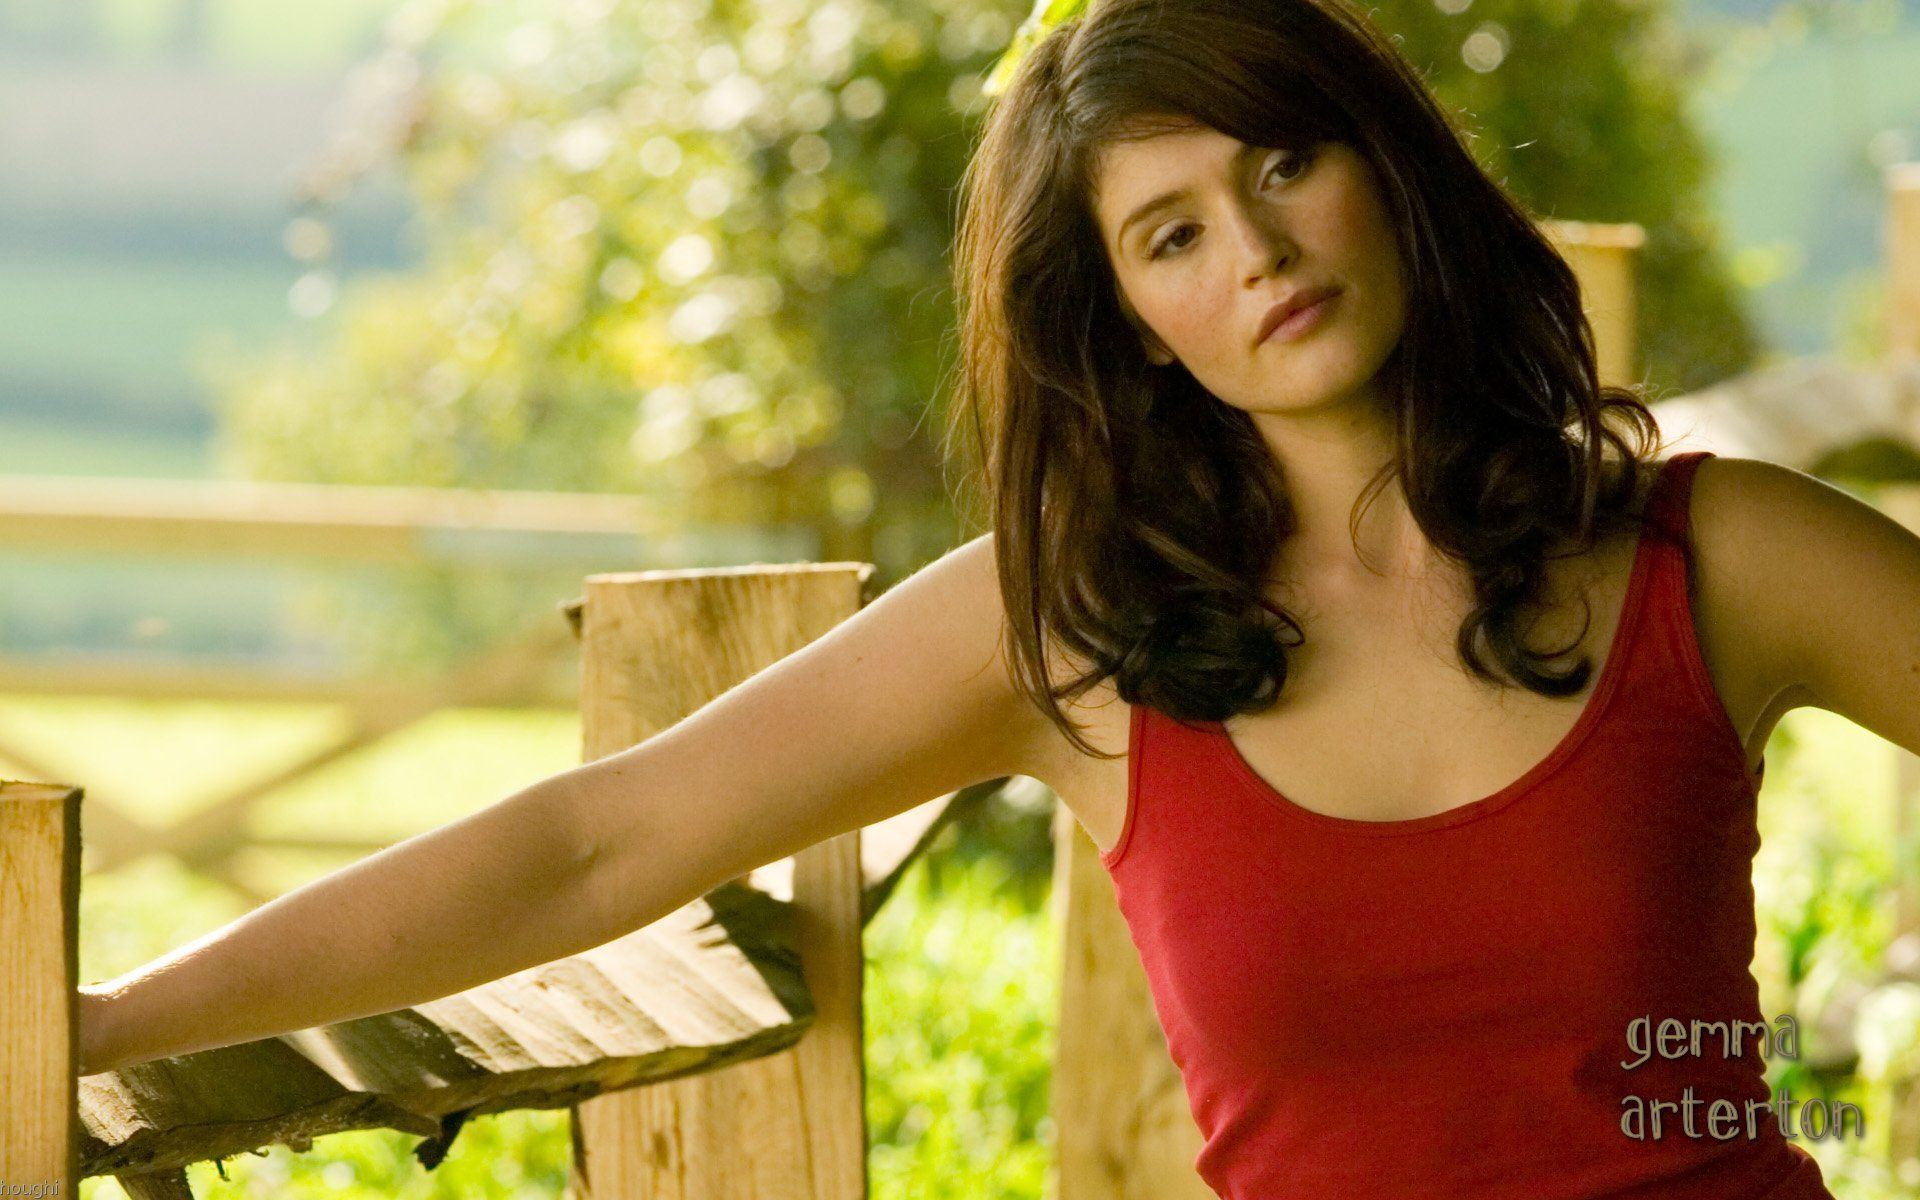 Cute Gemma Arterton Wallpaper